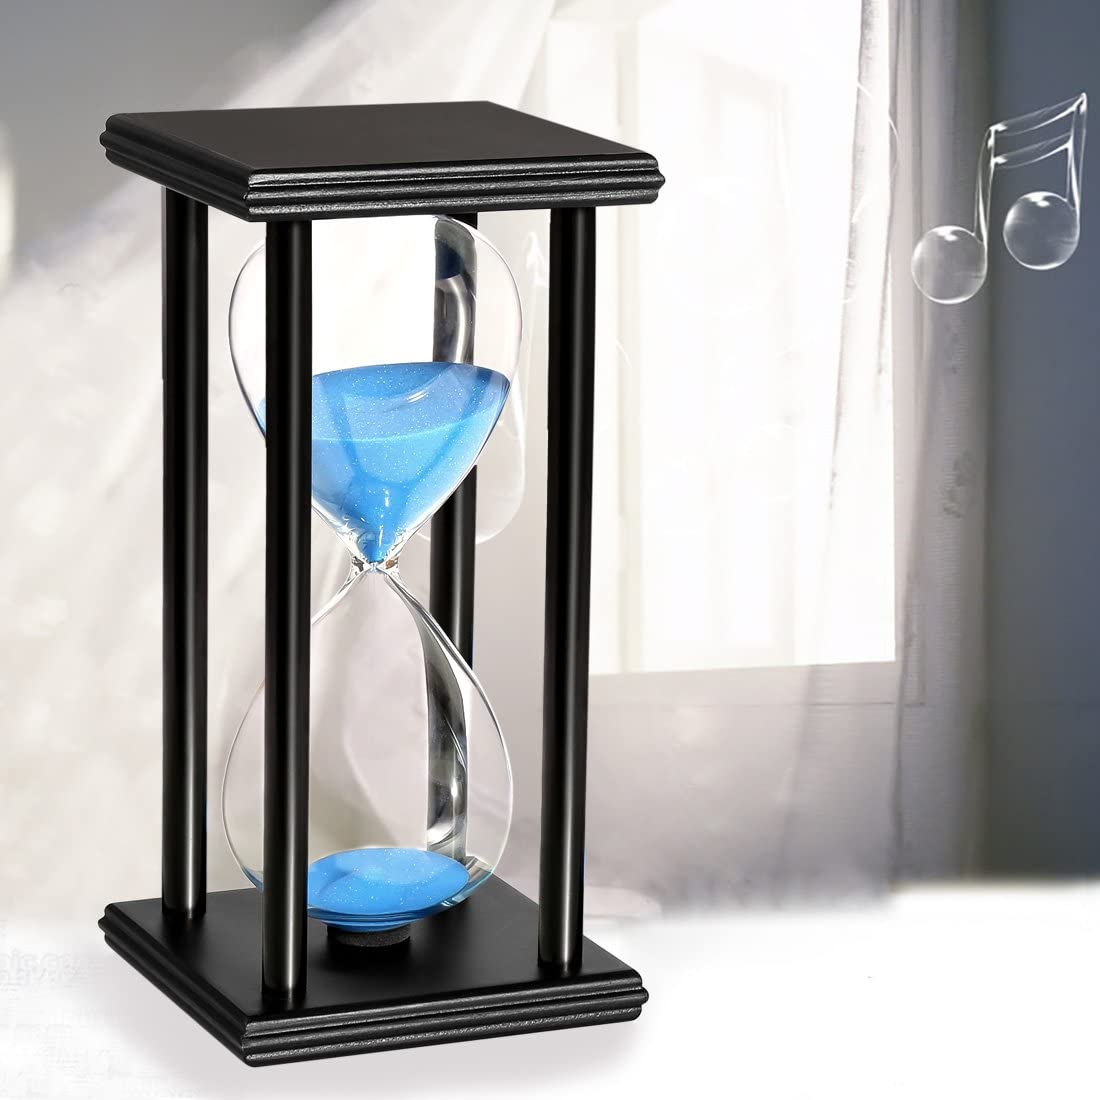 BOJIN 10 Minute Hourglass White Sand Timer Wooden Black Stand Hourglass Clock for Office Kitchen Decor Home White Sand